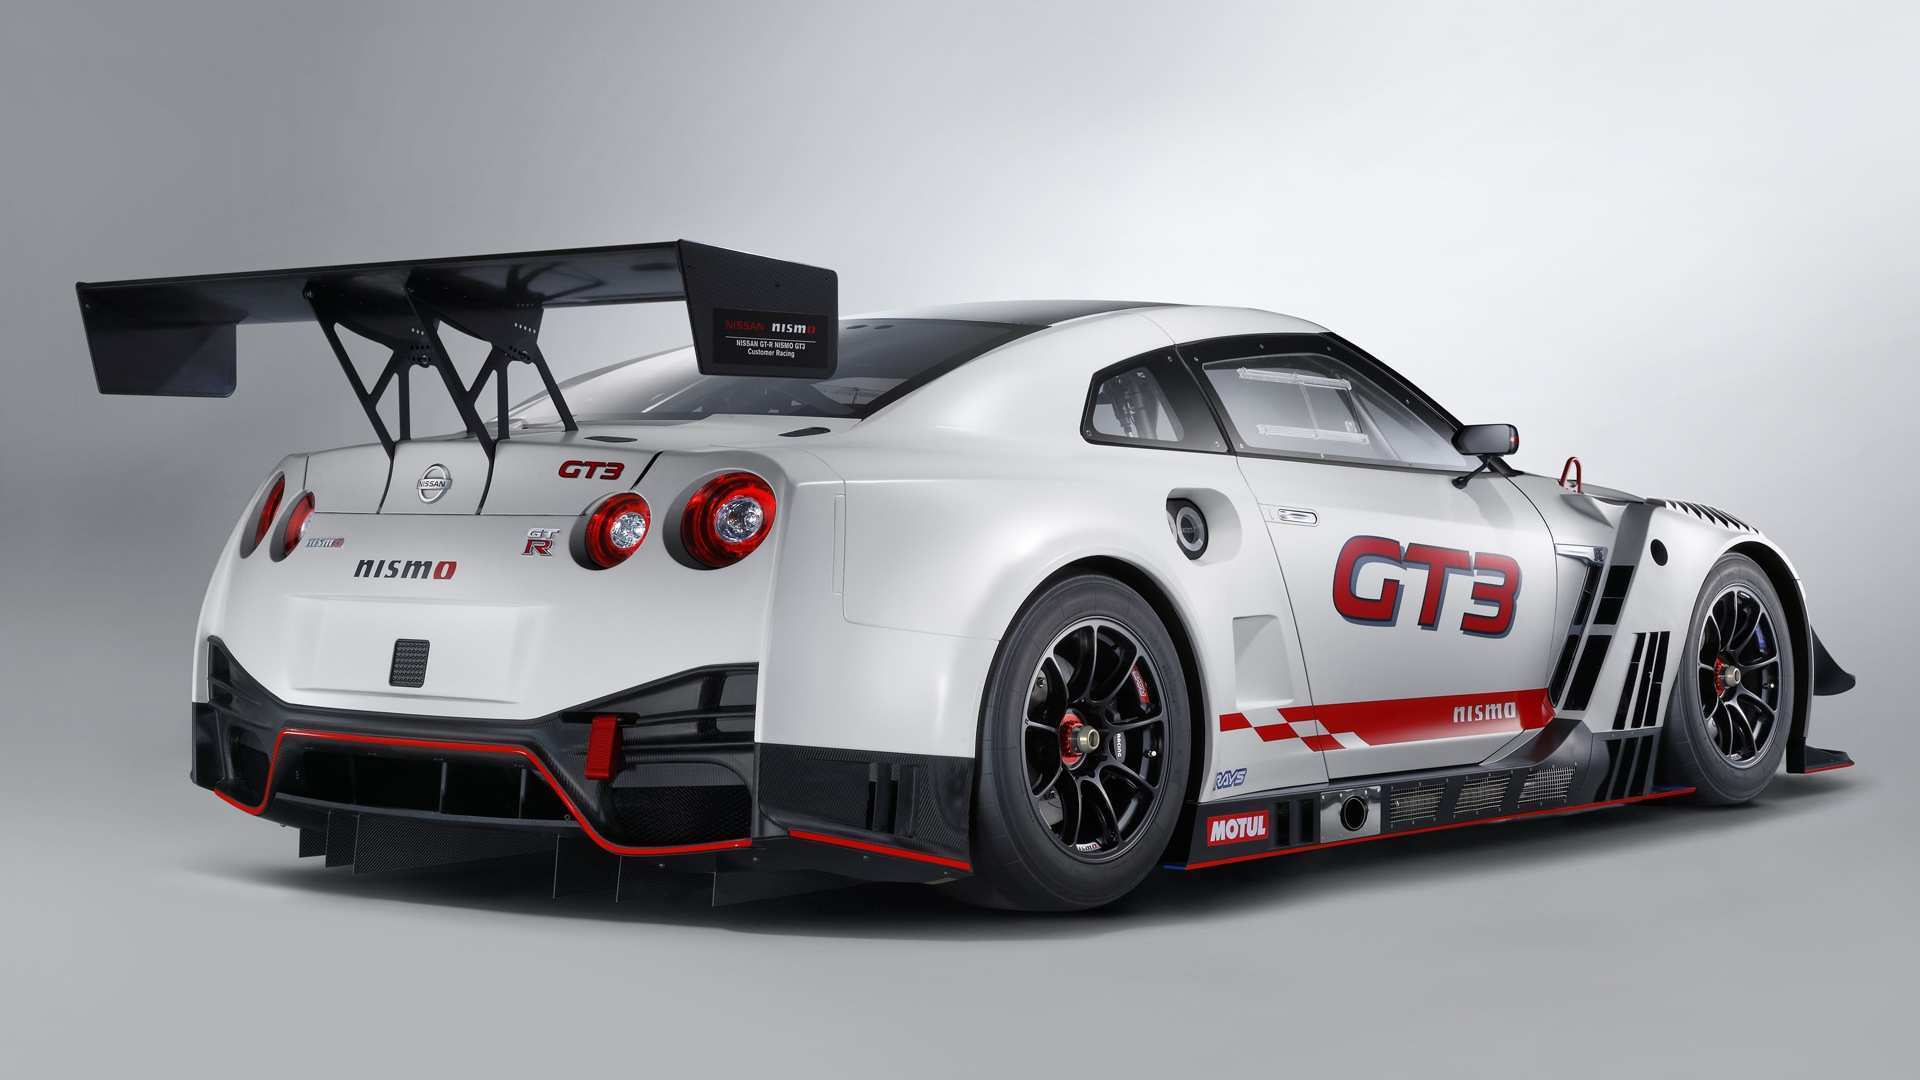 52 Best Review 2019 Nissan Gt R Nismo Gt3 Pricing by 2019 Nissan Gt R Nismo Gt3